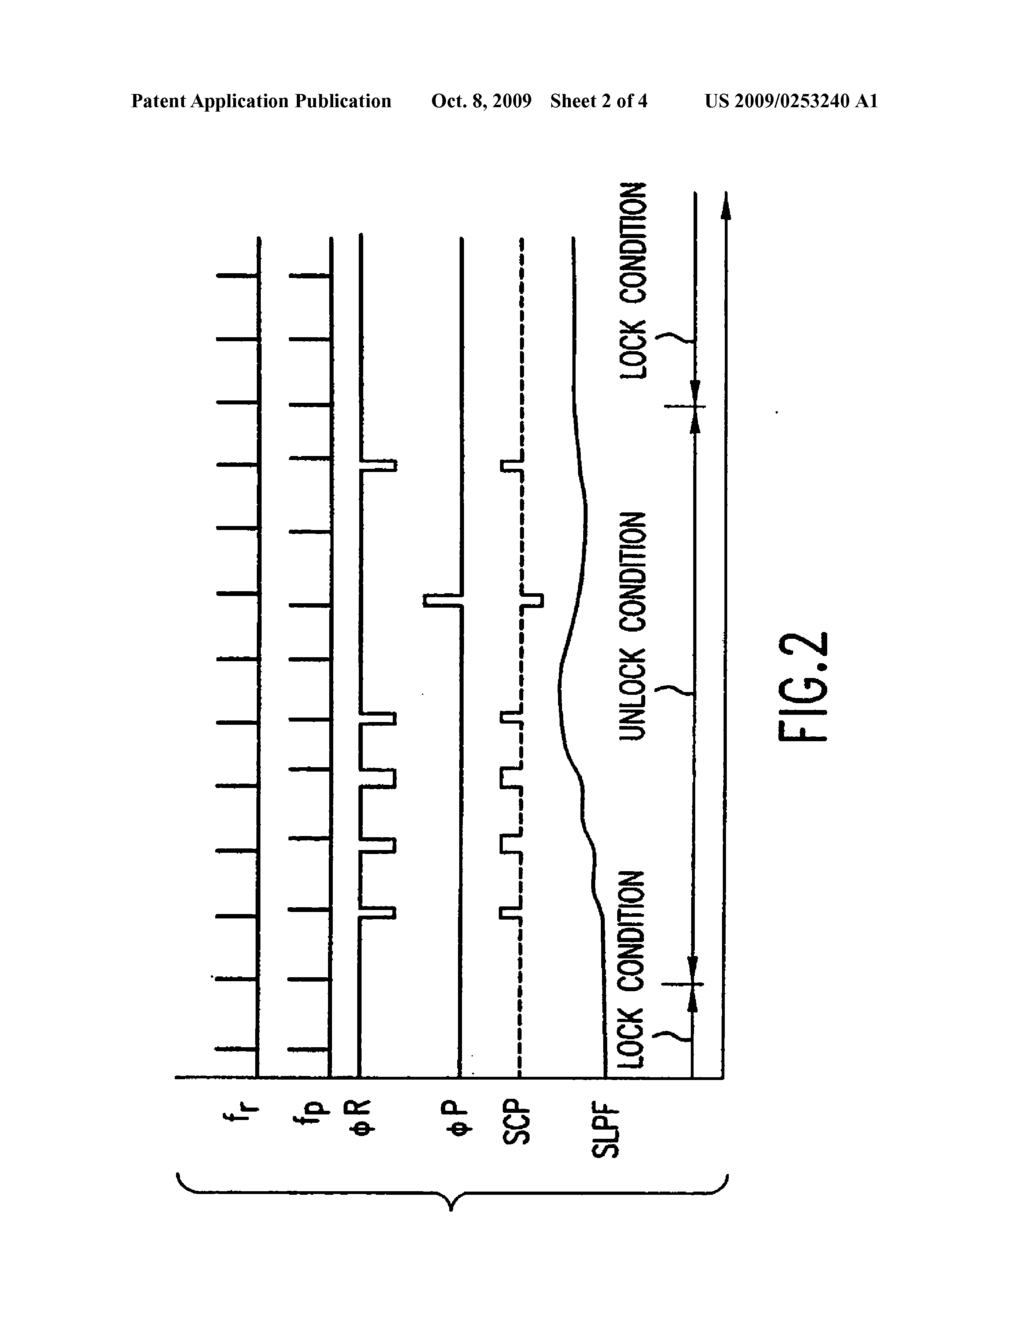 Thick Oxide P Gate Nmos Capacitor For Use In A Low Pass Filter Of Circuit Diagram And Method Making Same Schematic Image 03